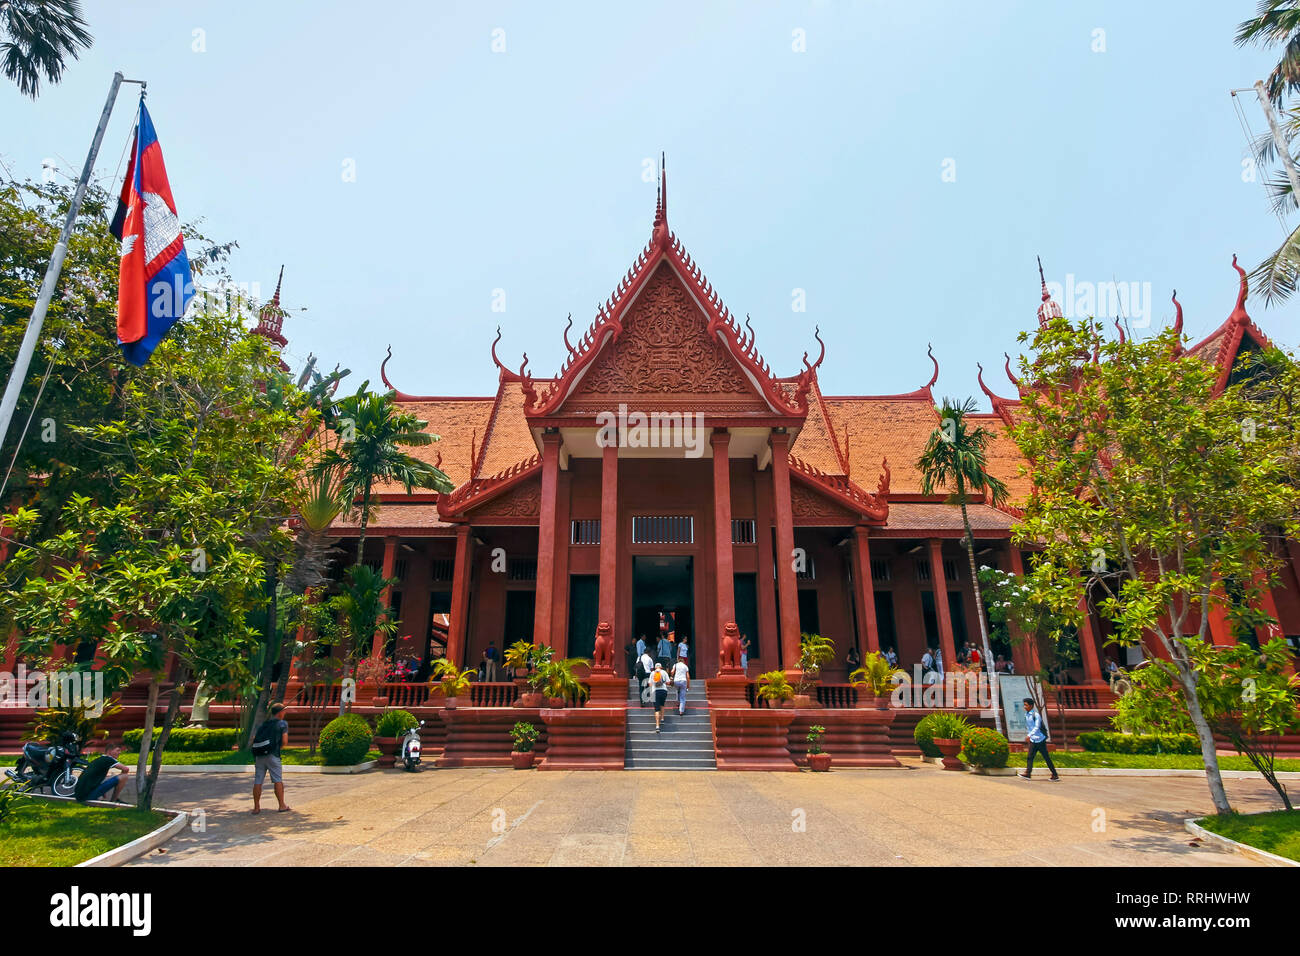 The 1920s National Museum of Cambodia, a large collection of historic Khmer artefacts, Preah Ang Eng St, Phnom Penh, Cambodia, Indochina - Stock Image